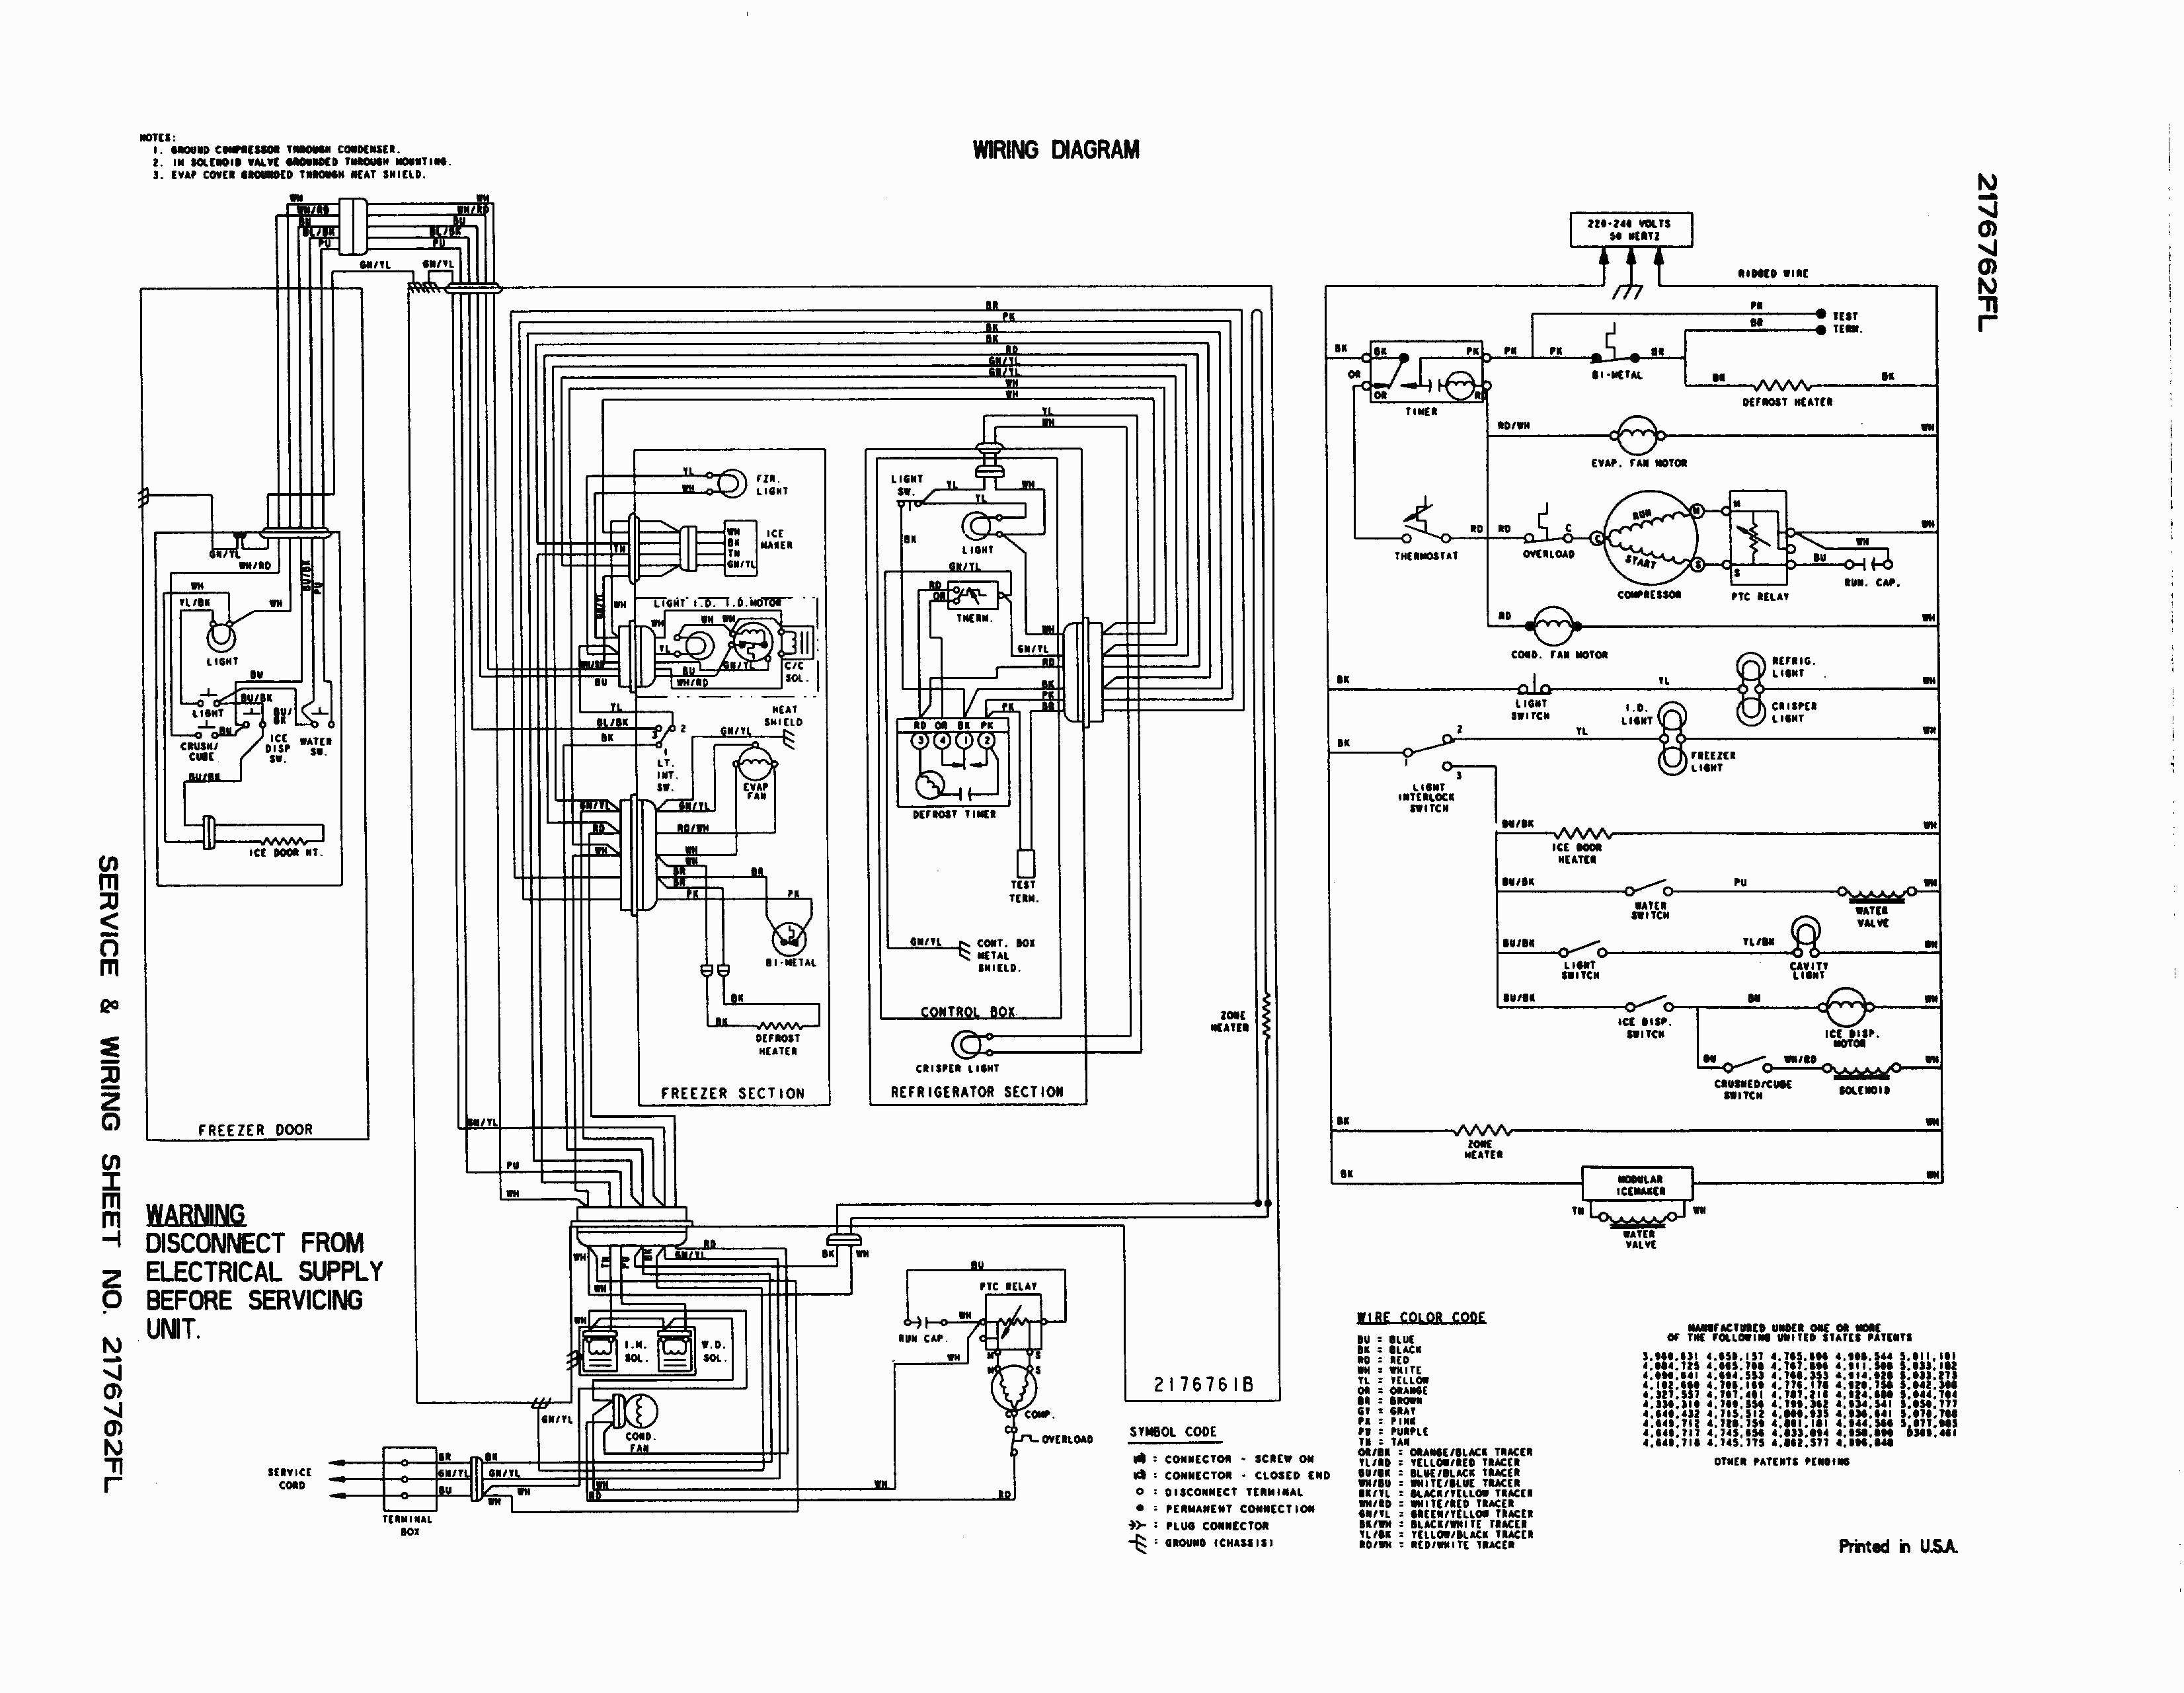 Fridge Wire Diagram Wiring Diagram For You Samsung Inverter Fridge Wiring Diagram Samsung Refrigerator Wiring Diagram